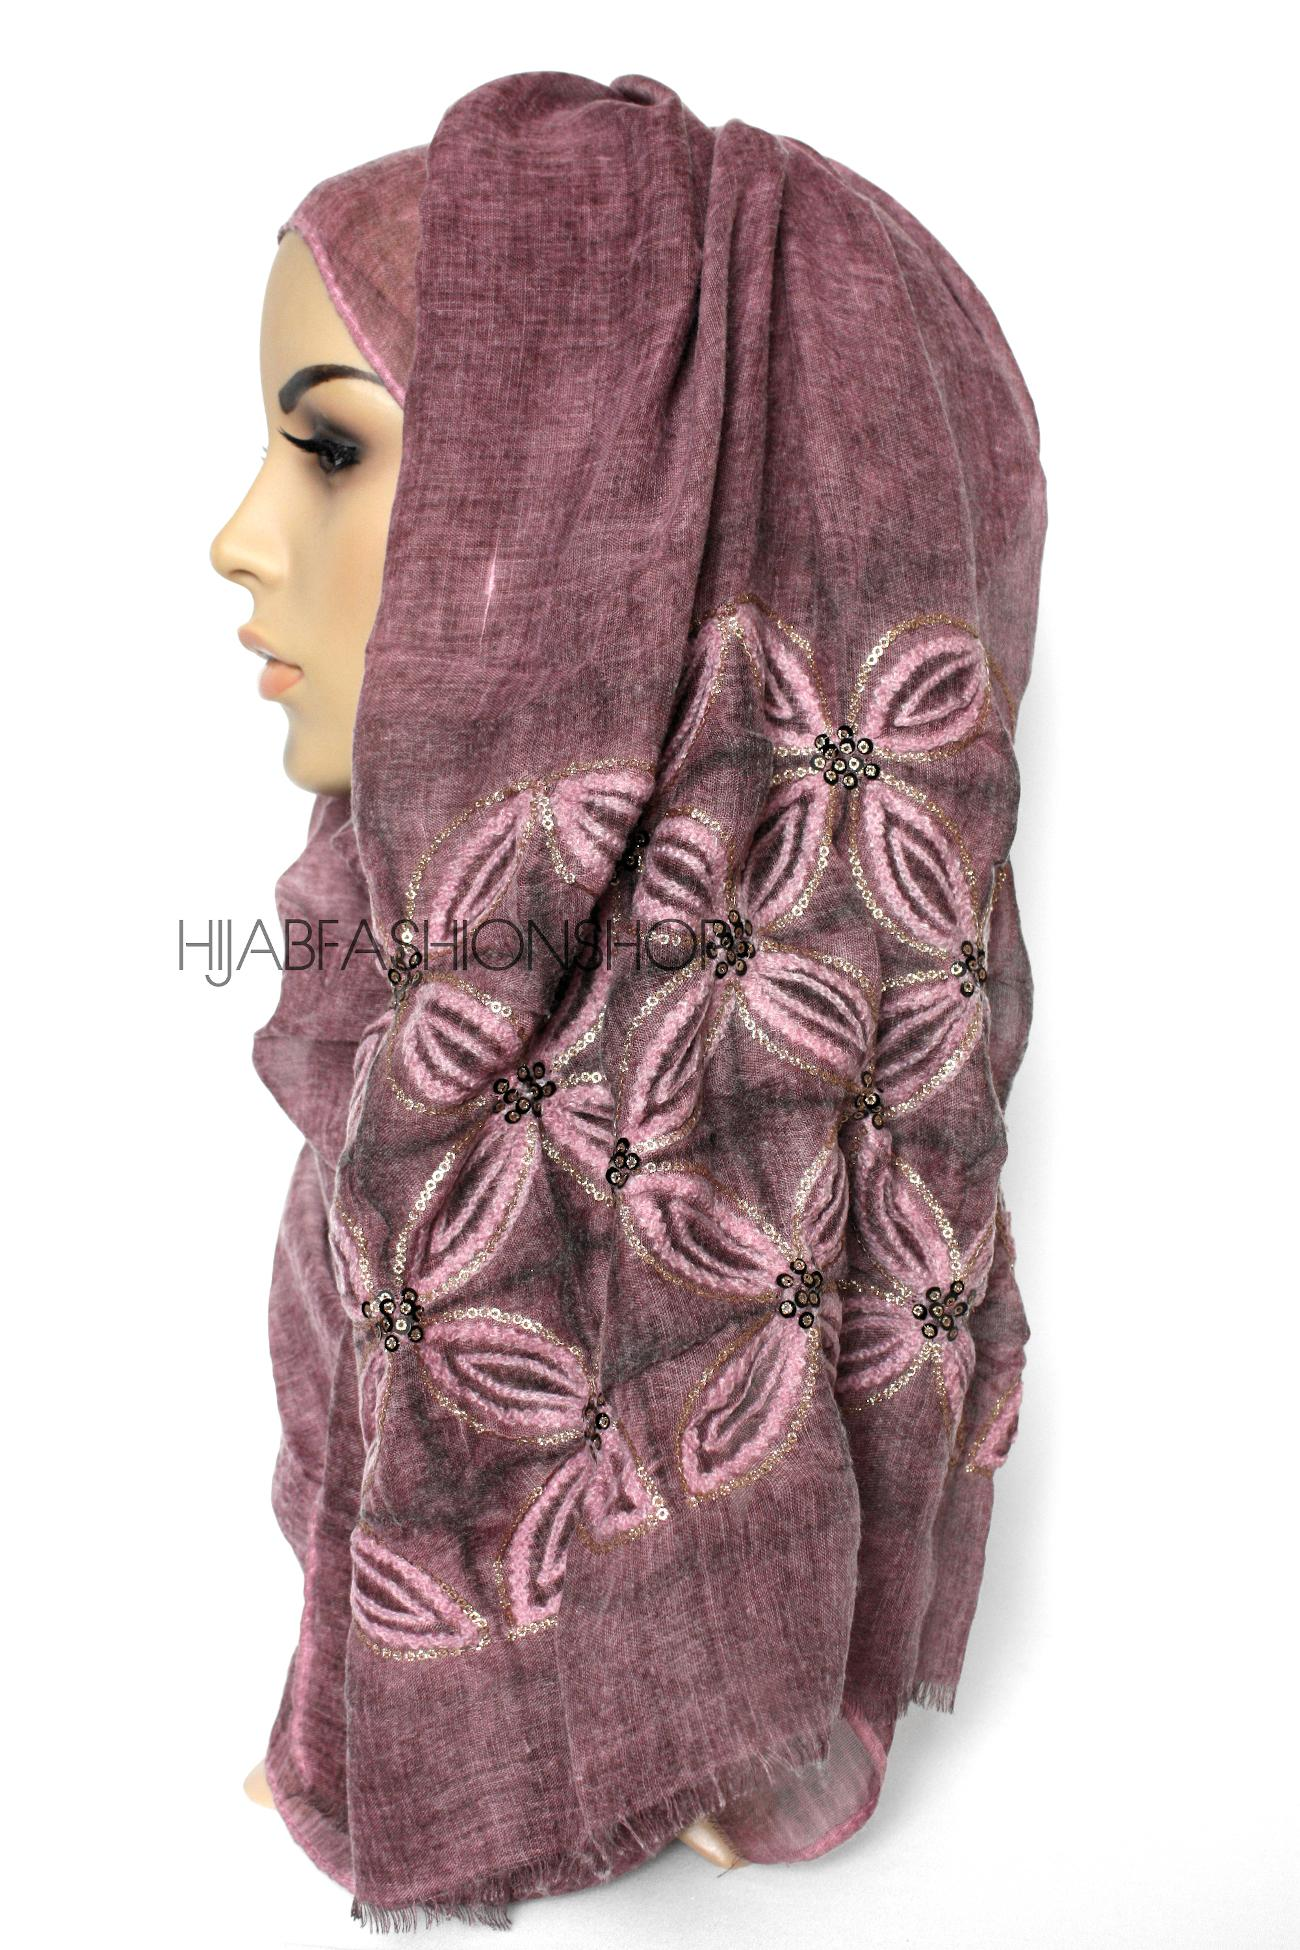 maroon linen look hijab with lilies embroidery and sequins side view